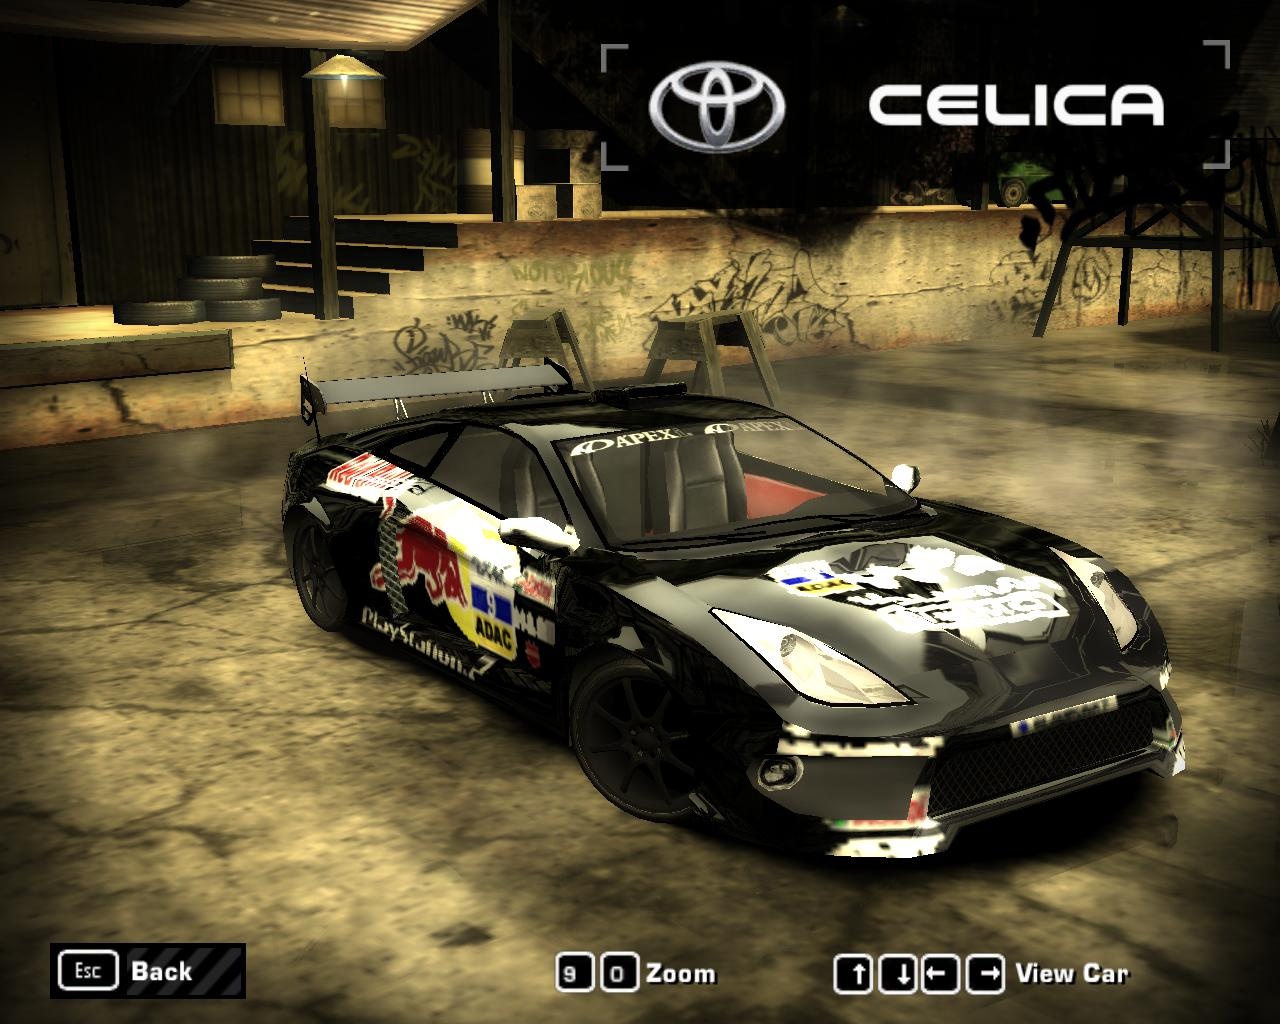 Nfs Most Wanted 2 Cars Wallpapers Need For Speed Most Wanted Cars By Toyota Page 2 Nfscars